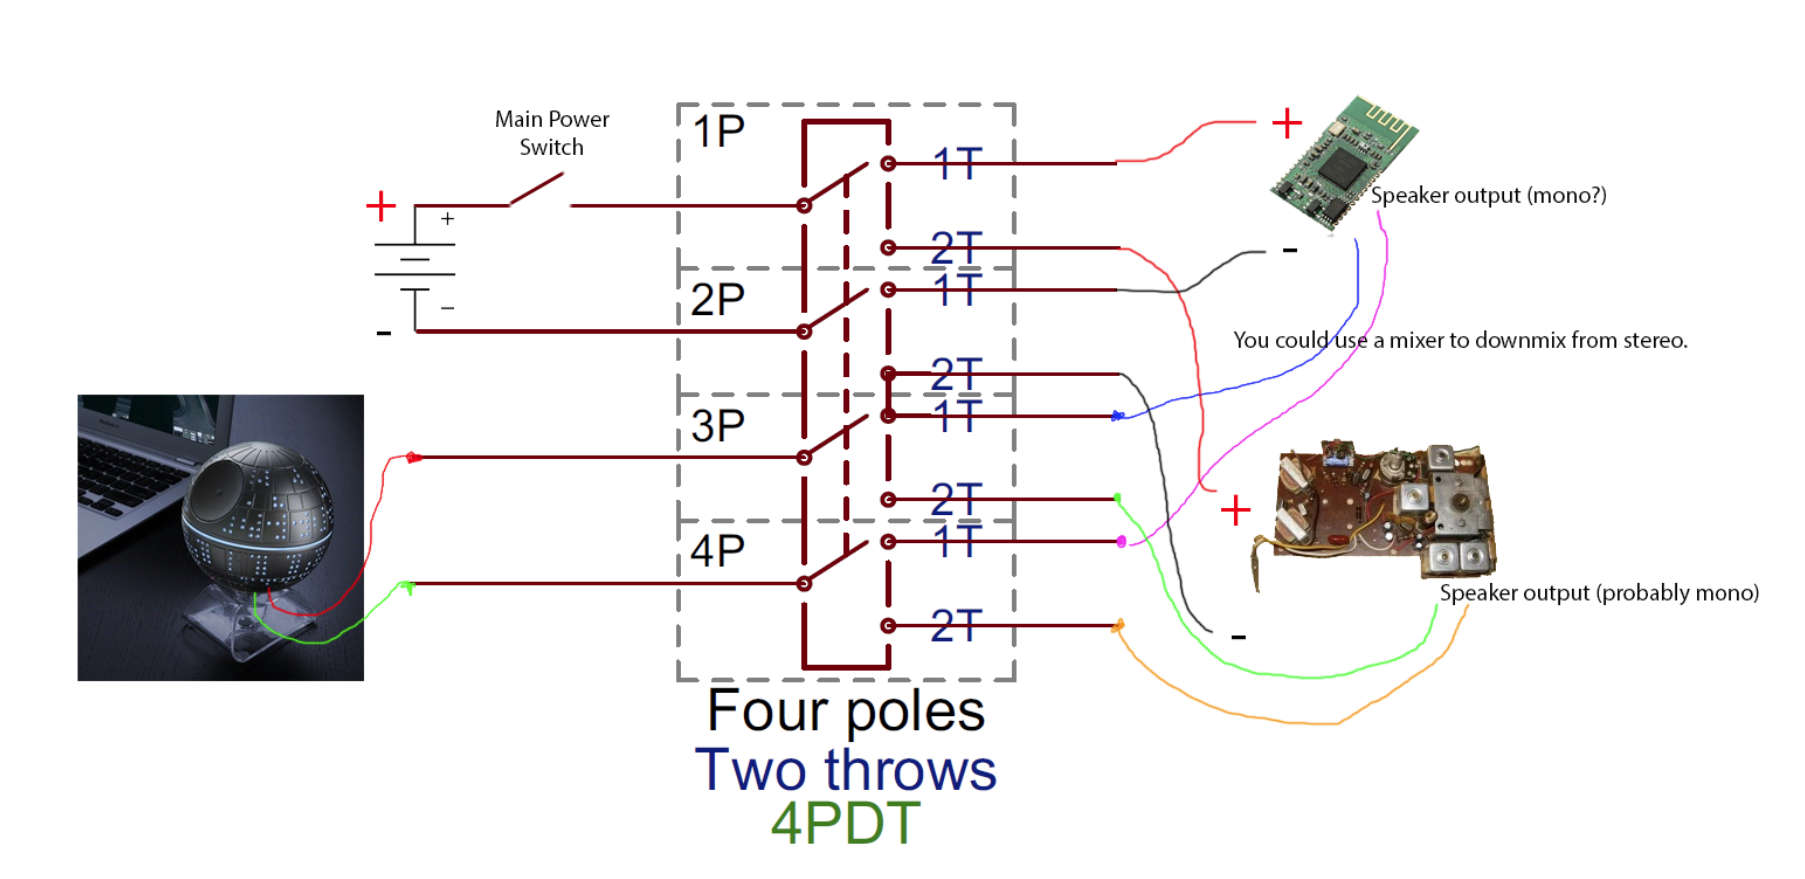 Old Radio Bluetooth Amp Switch Overheat Projects Discourse 4pdt Wiring Diagram Done Really Quickly1805x879 354 Kb